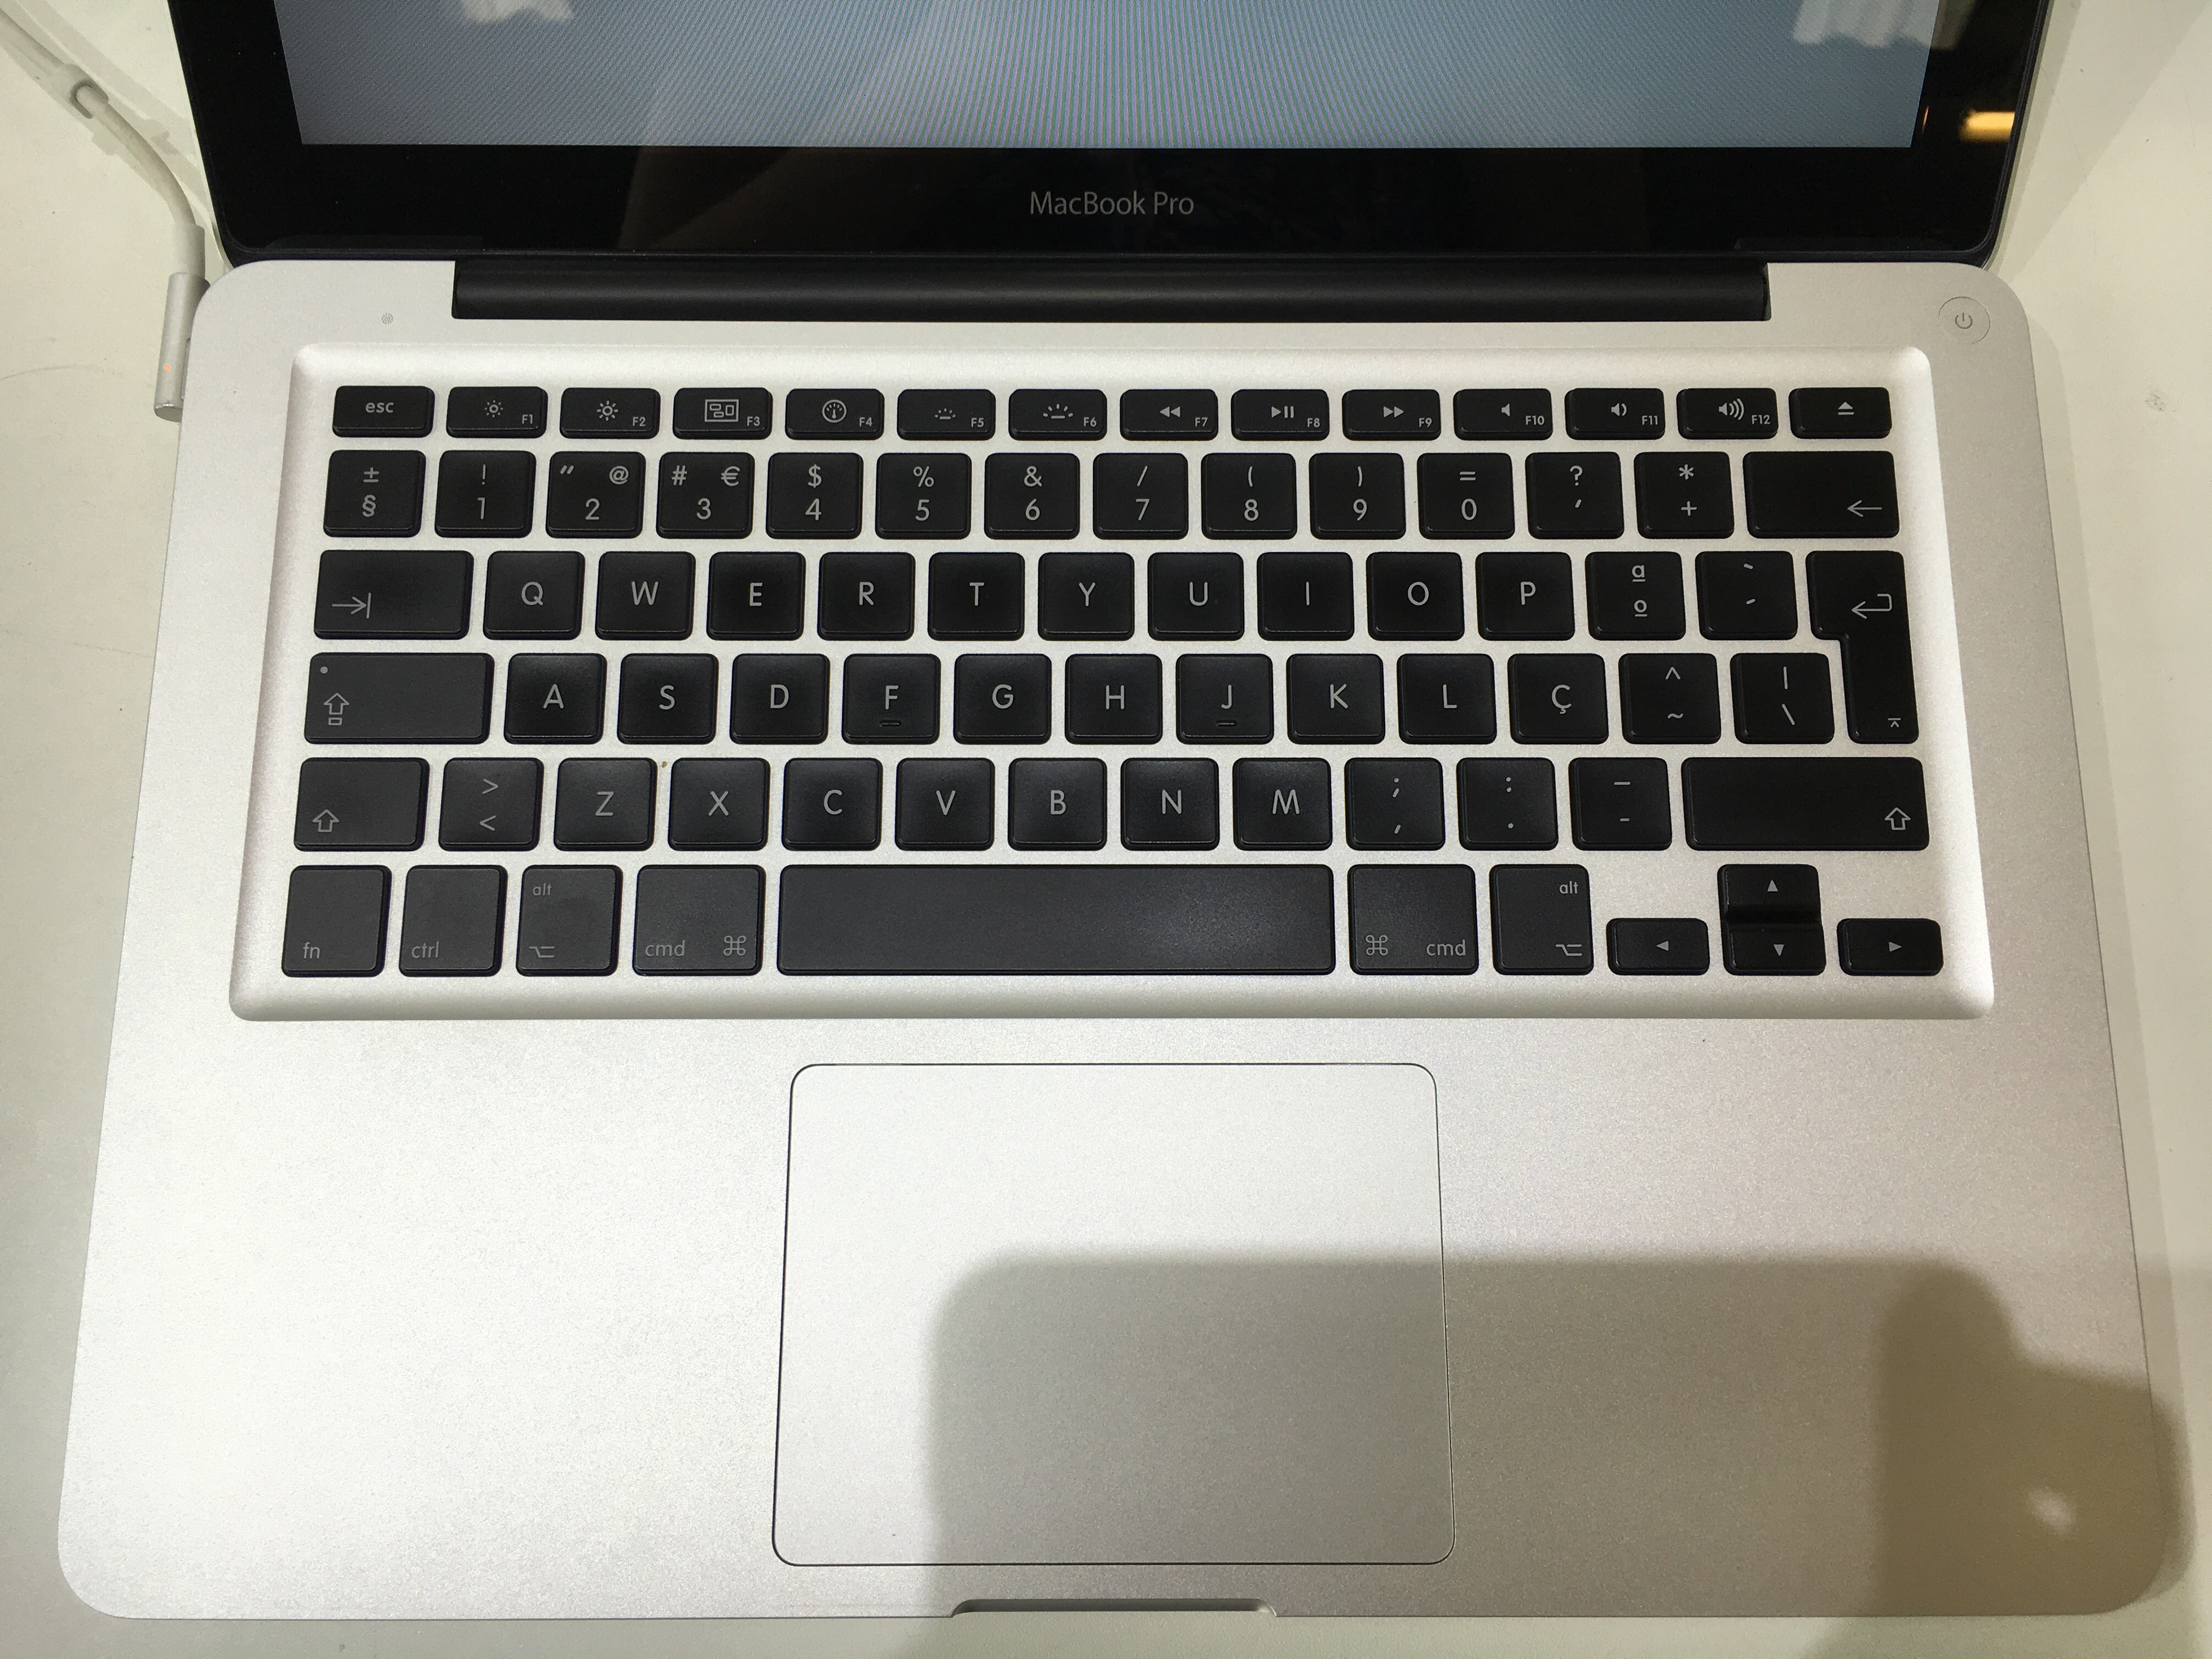 Apple MacBook Pro 13in Core2Duo 2.53GHz 4GB RAM 250GB HDD MB991BA A1278 Mid 2009